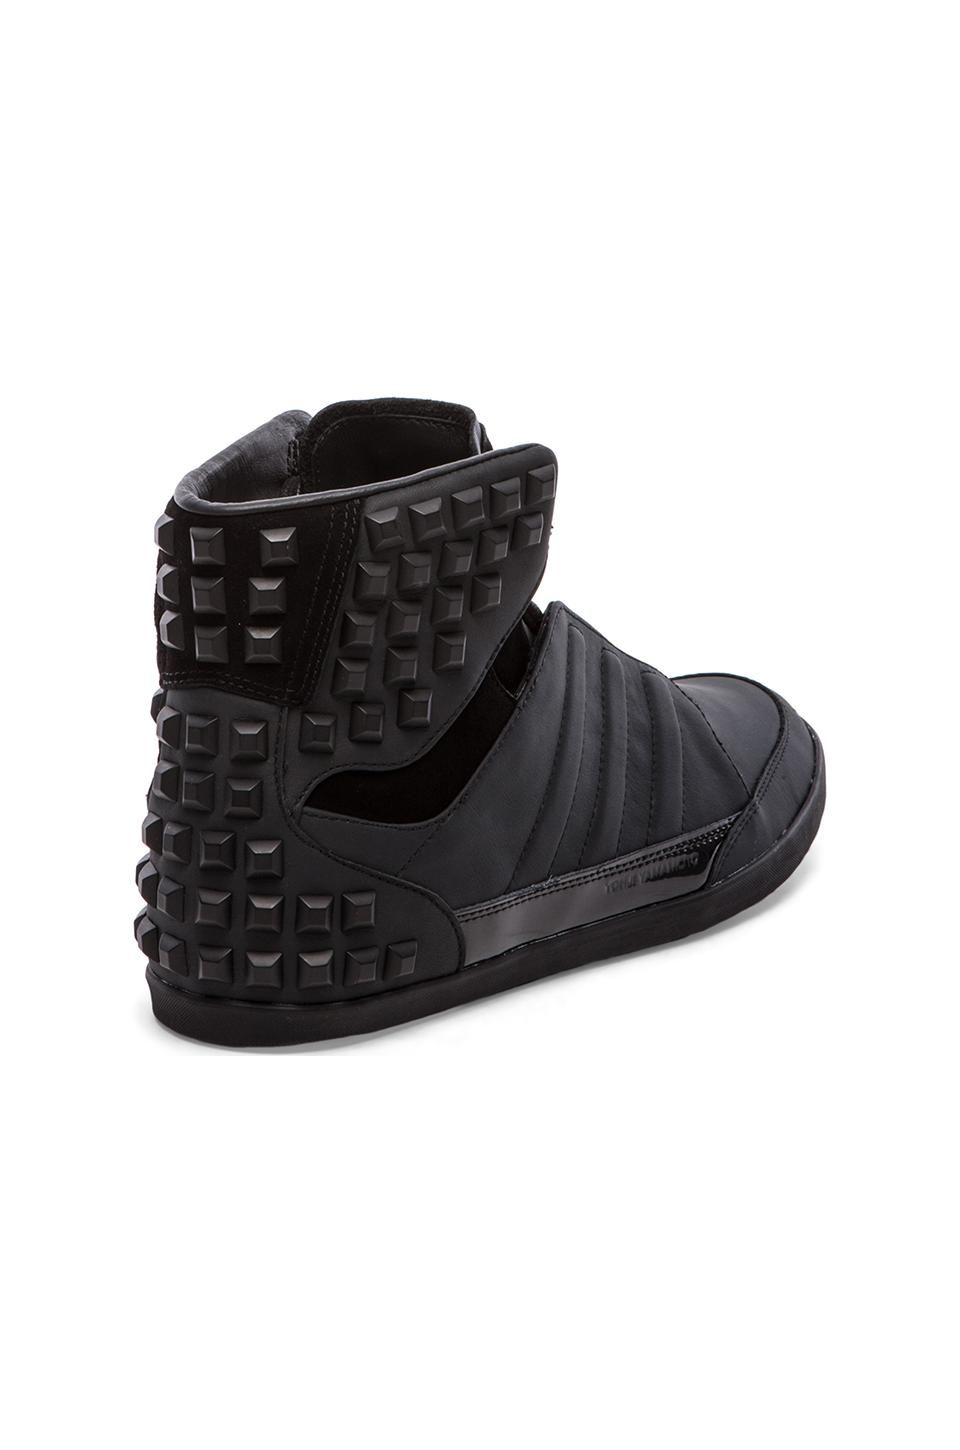 9c5a7be4df8d5 adidas Y-3 Yohji Honja High: Black studded | Shoes in 2019 | Men's ...